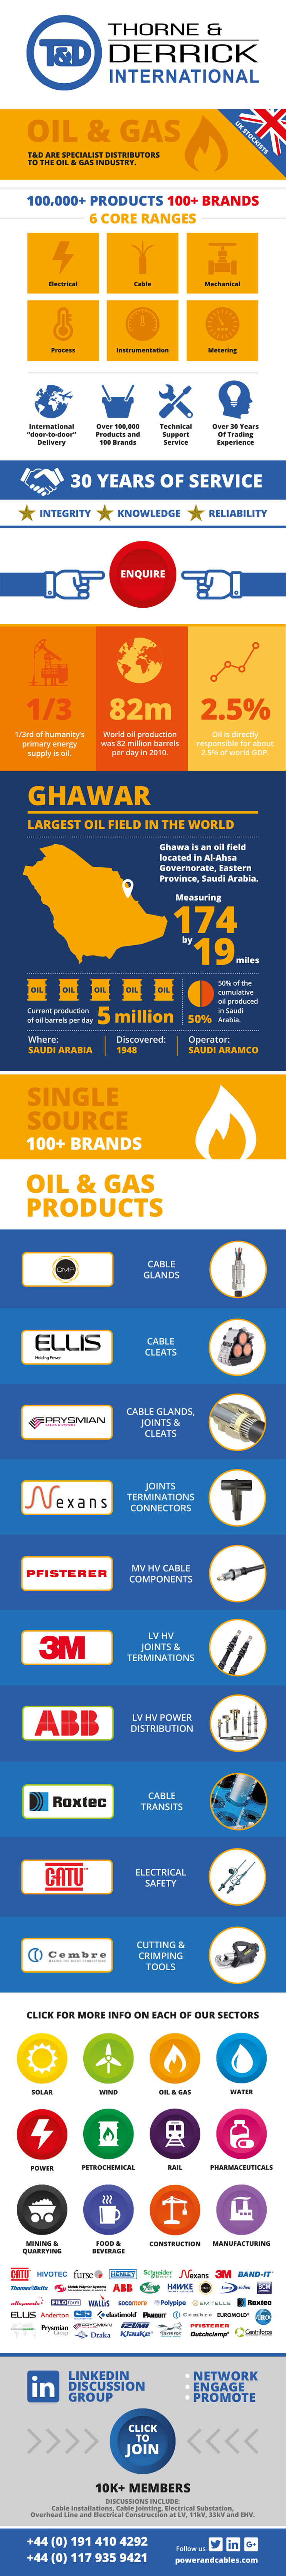 Oil & Gas Infographic